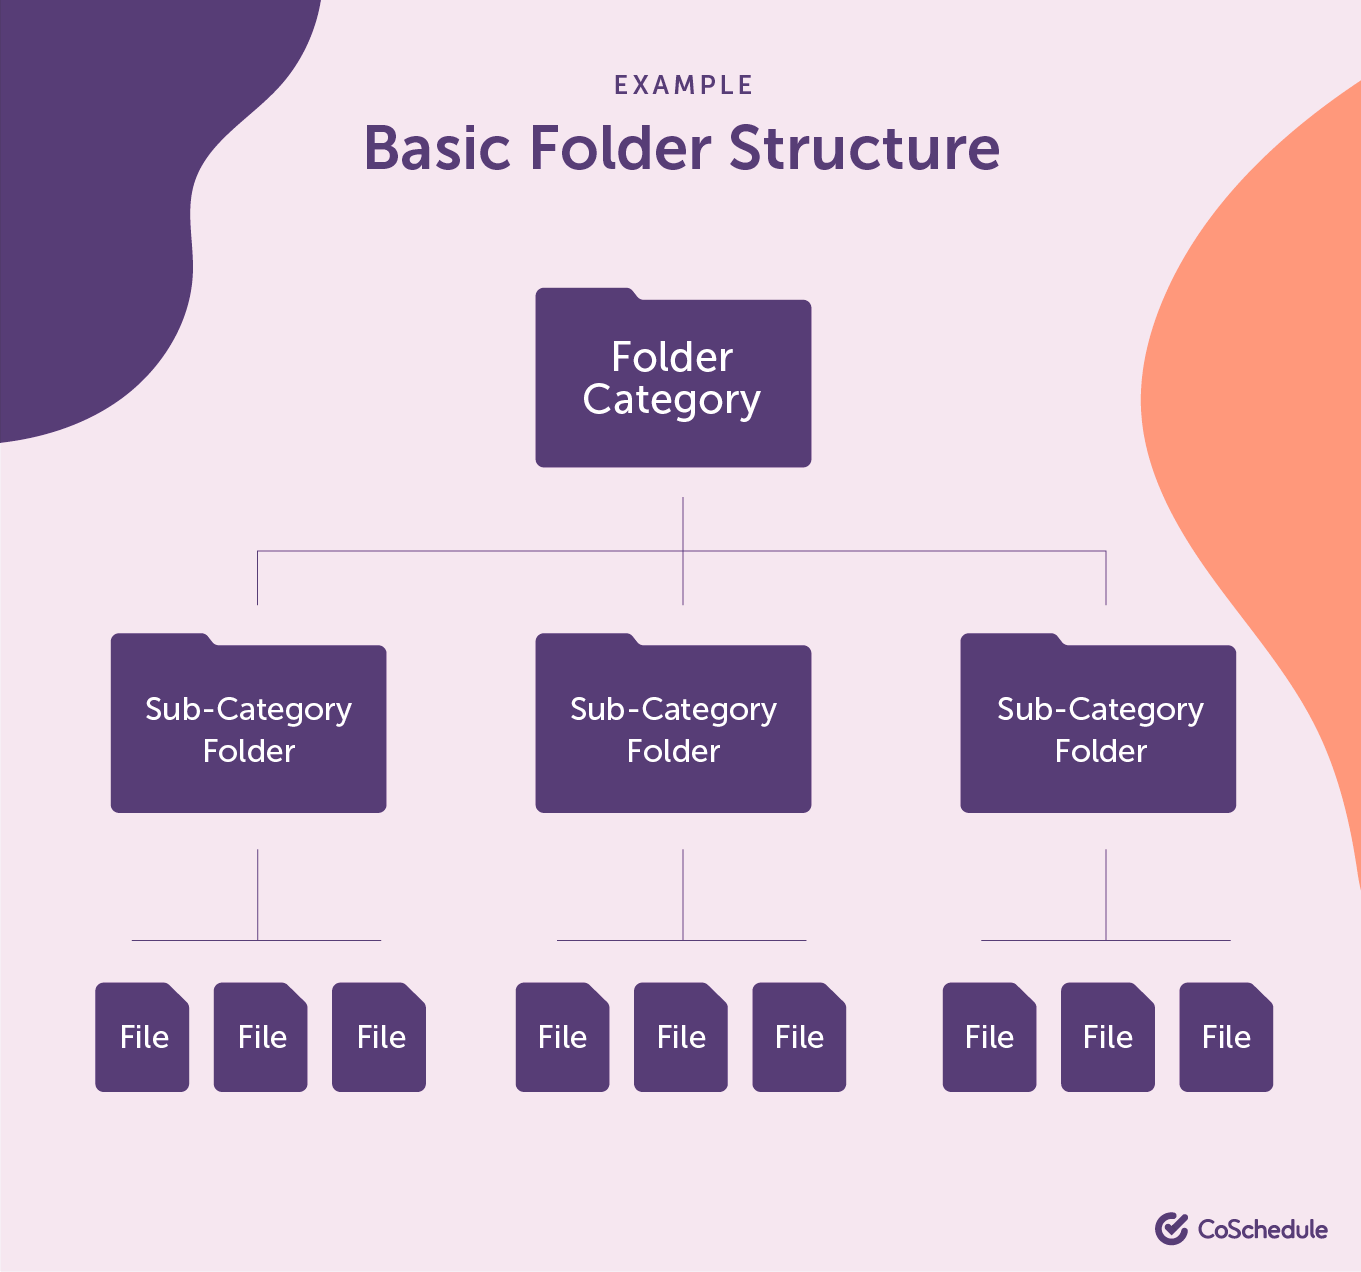 Example of a basic folder structure